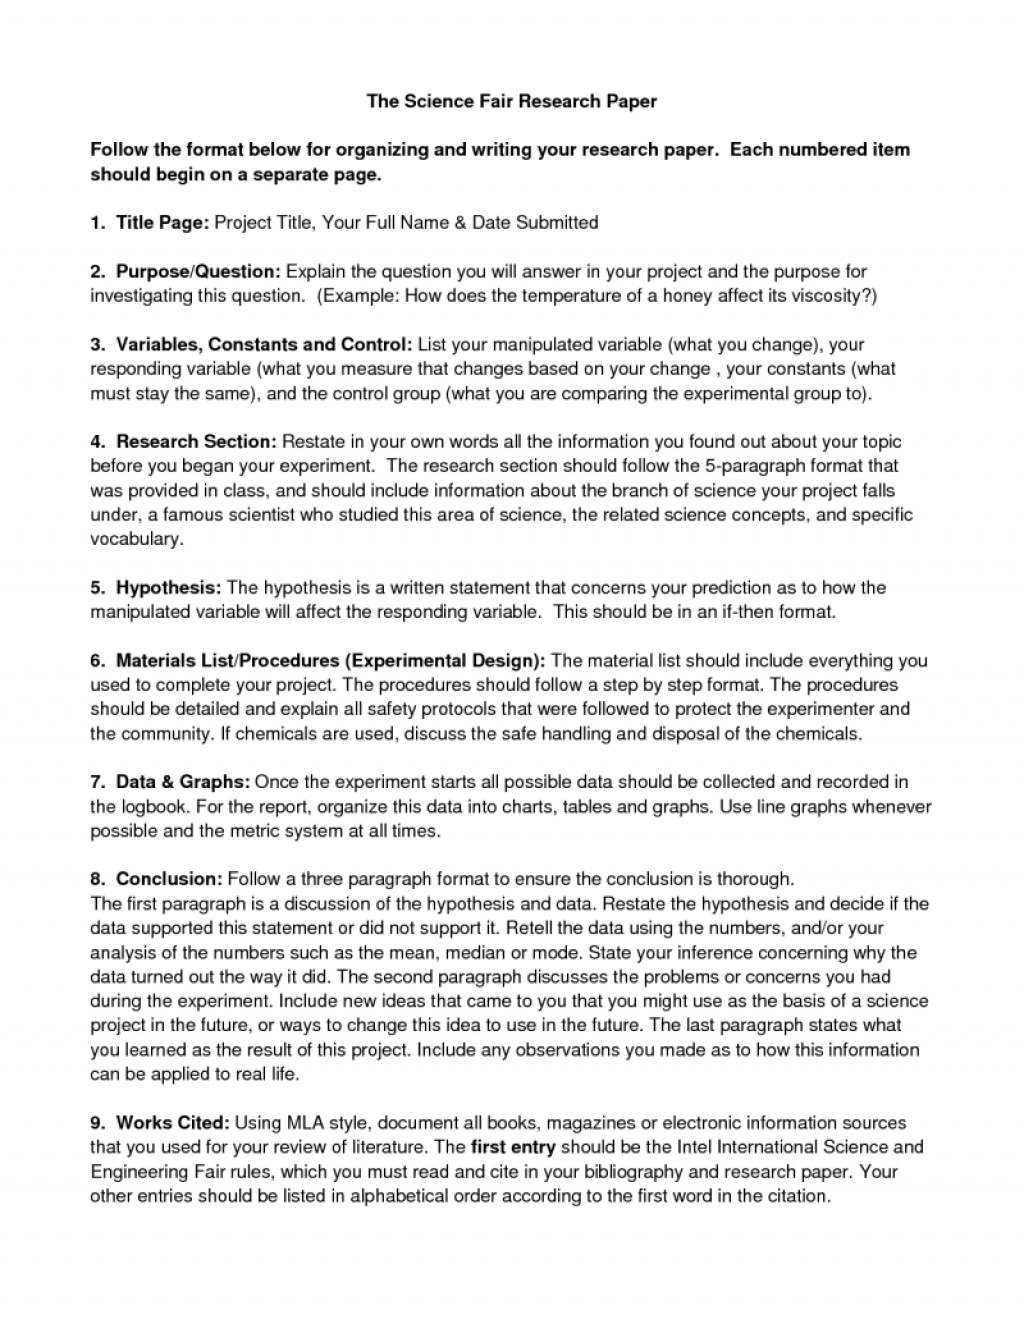 024 Ideas Of Science Fair Research Paper Outline Unique Political Guidelines Guidelinesresize8002c1035 Rare College Format Apa Example Pdf Large